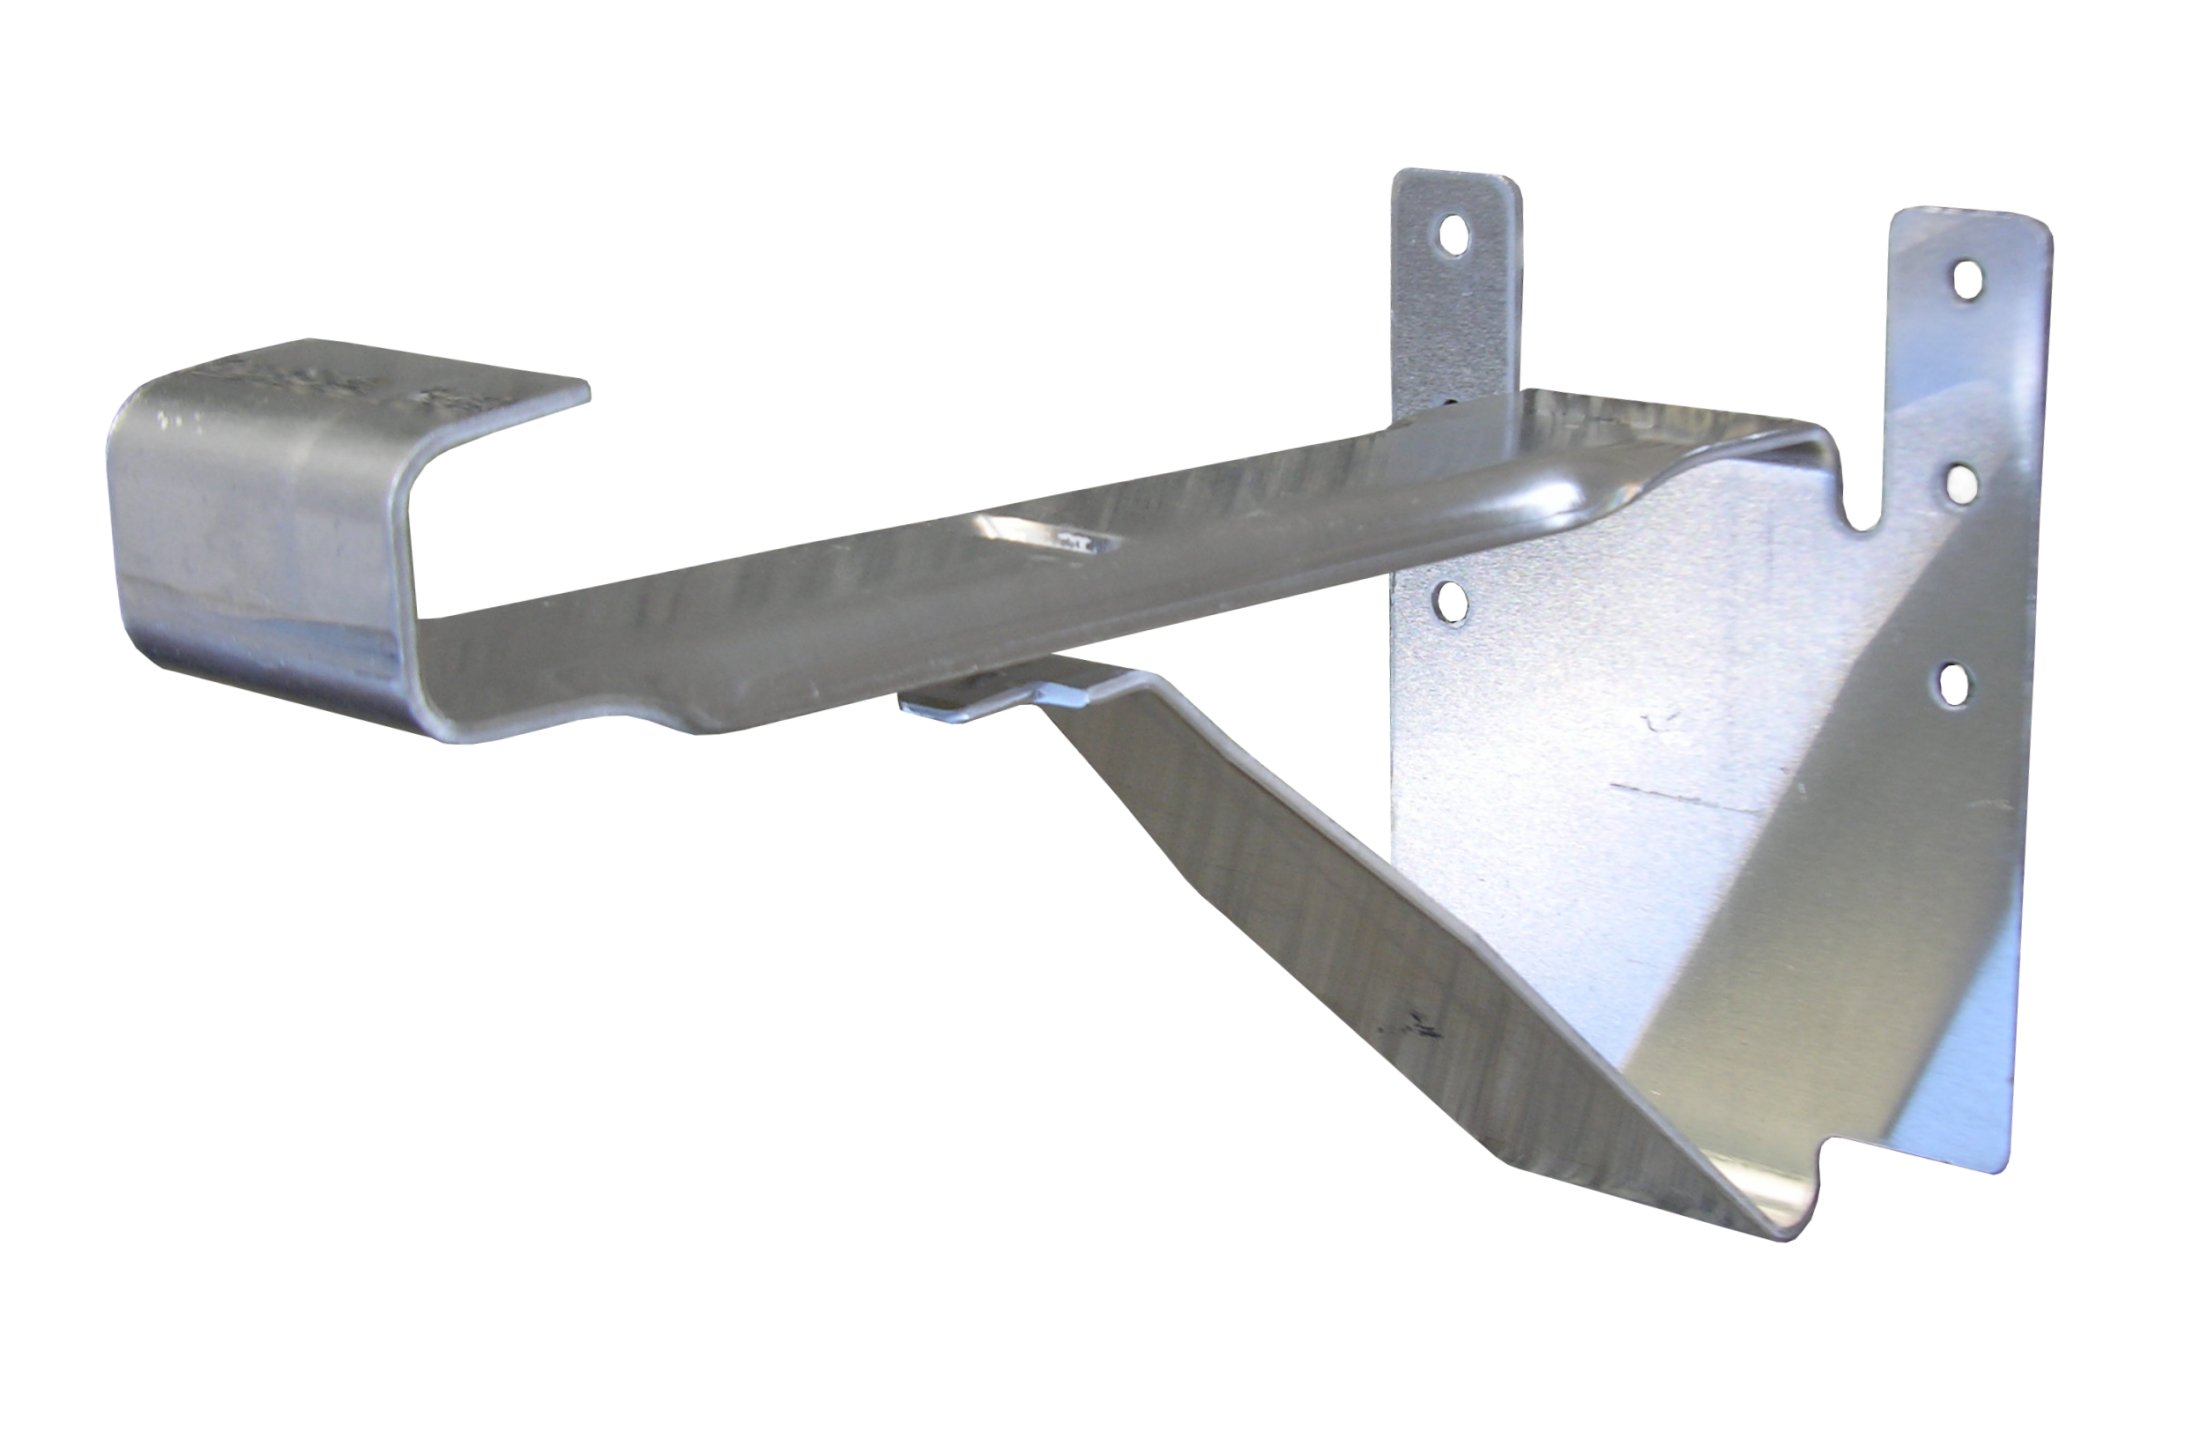 Installed types of Gutter hangers